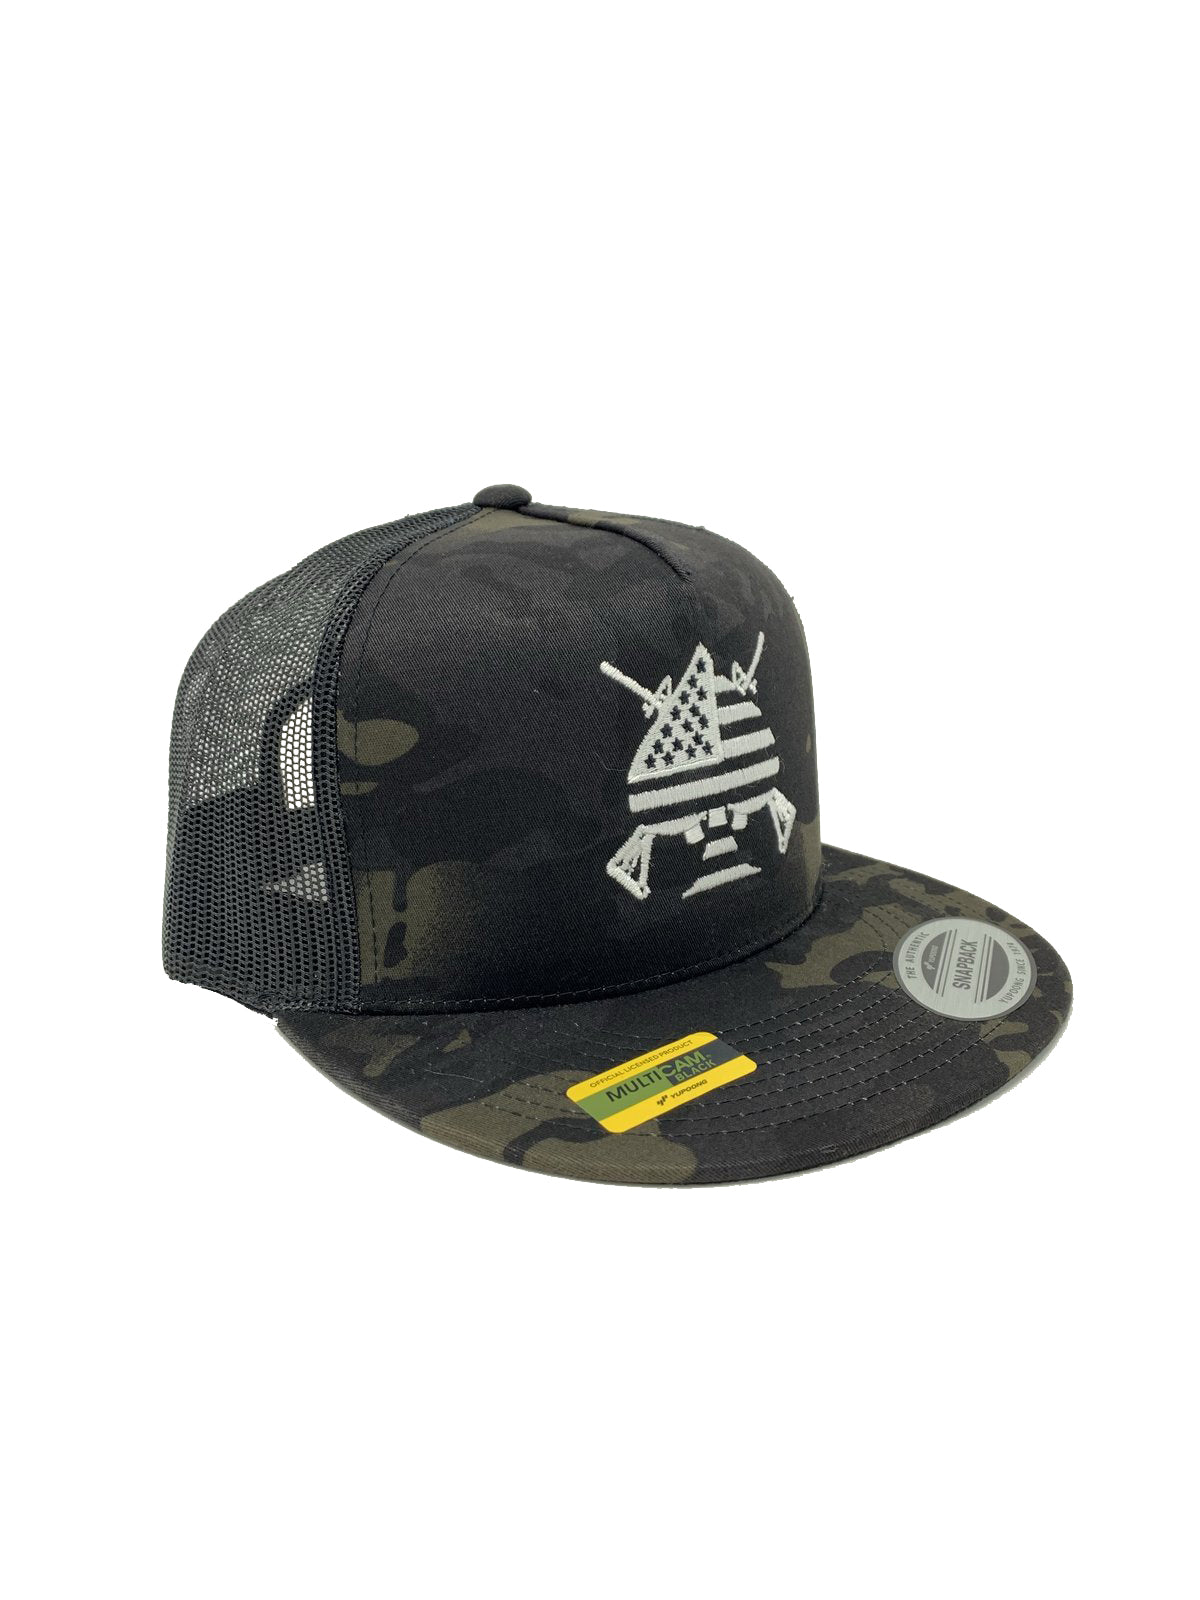 MC Logo SnapBack Hat